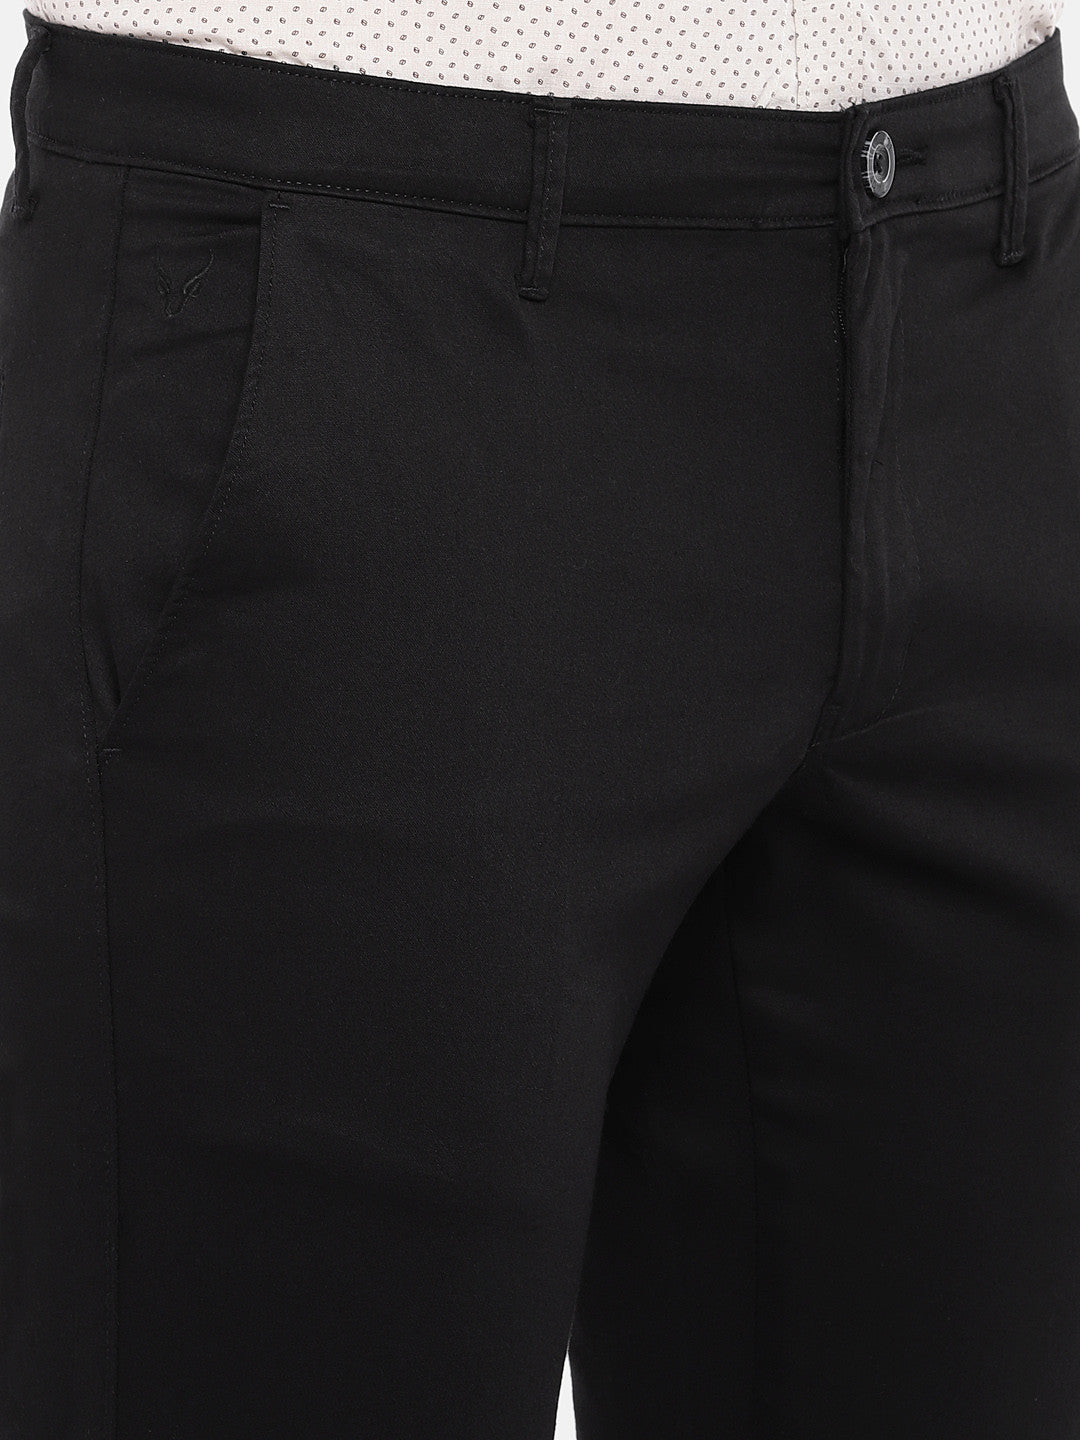 Black Regular Fit Solid Chinos-5